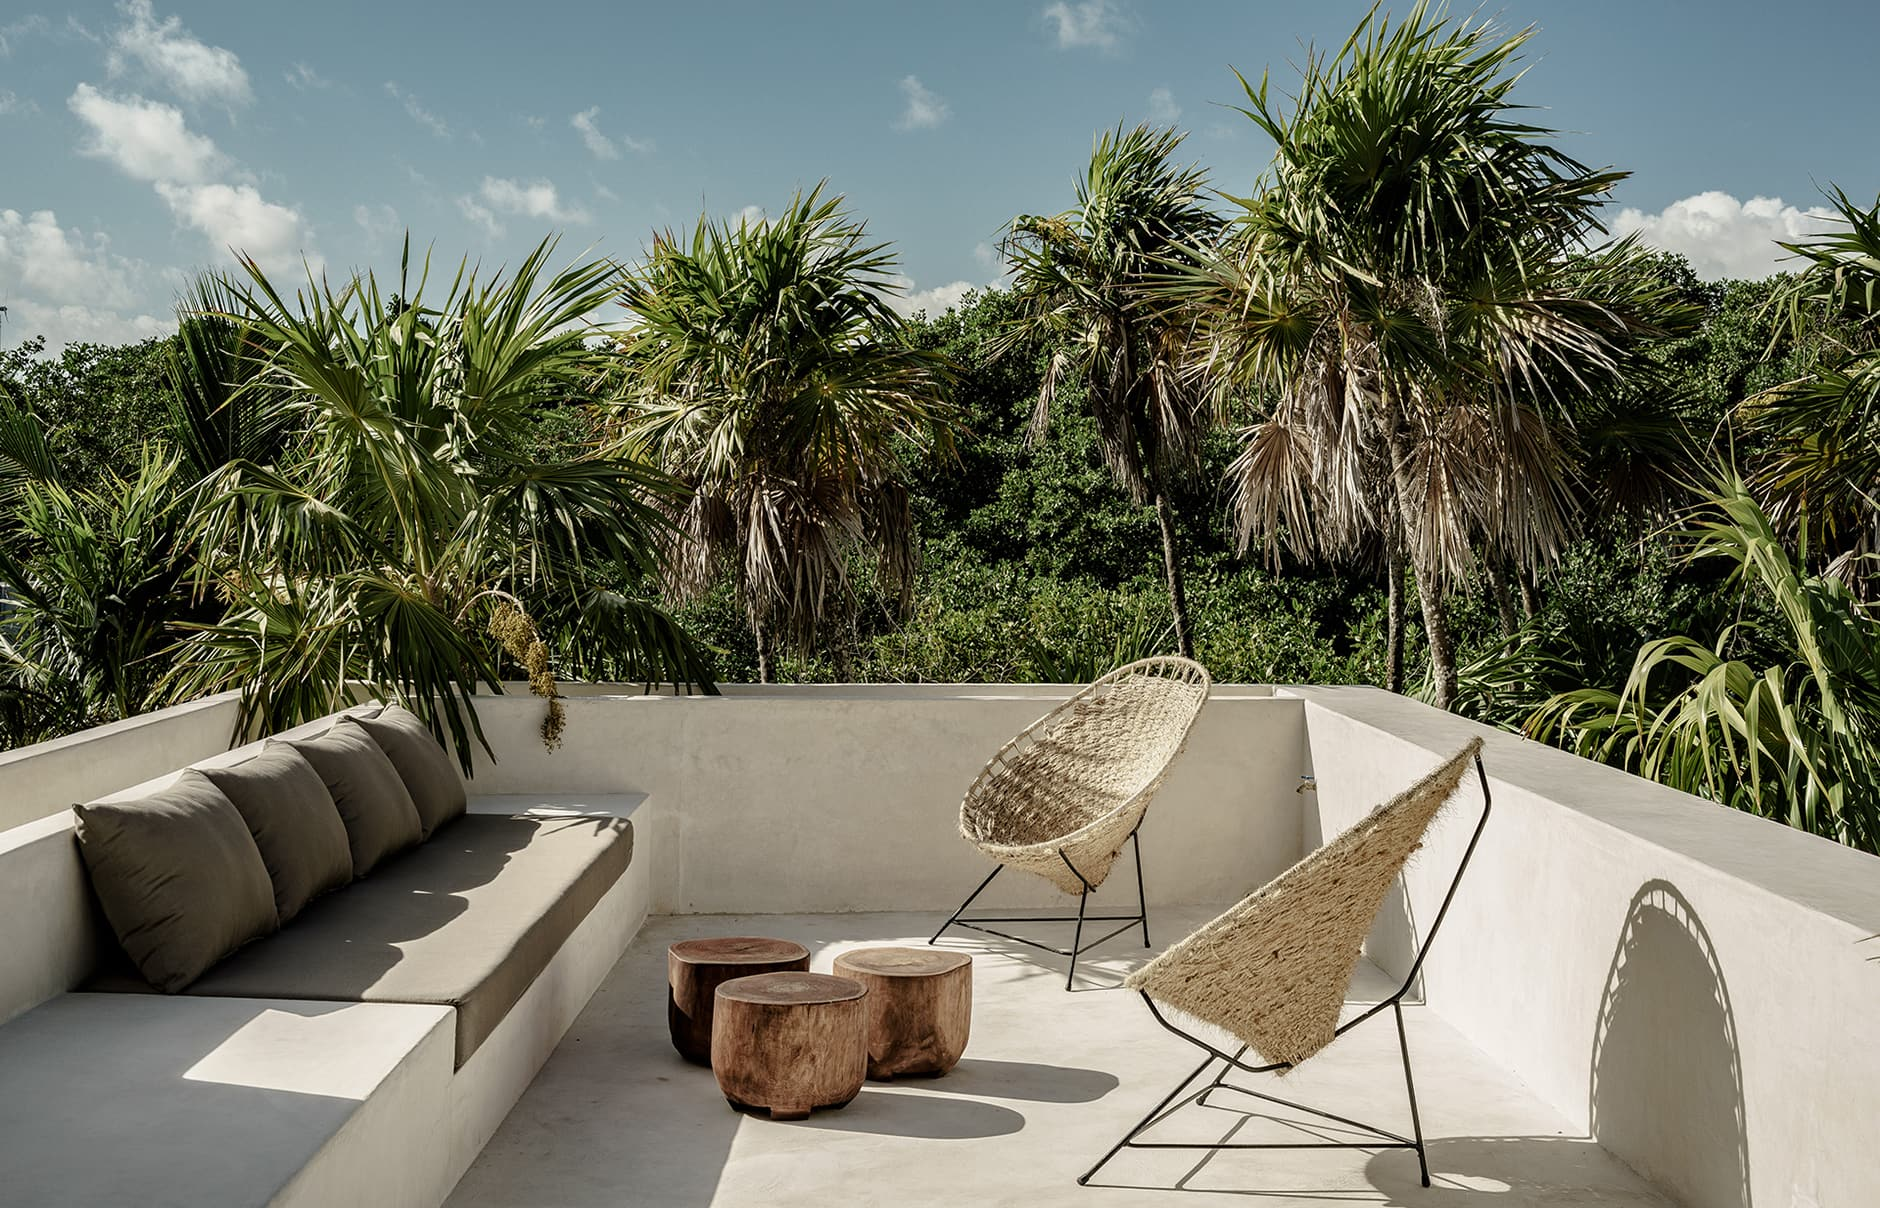 Be A Jungle Nomad At The Tulum Treehouse Luxury Hotels Travelplusstyle